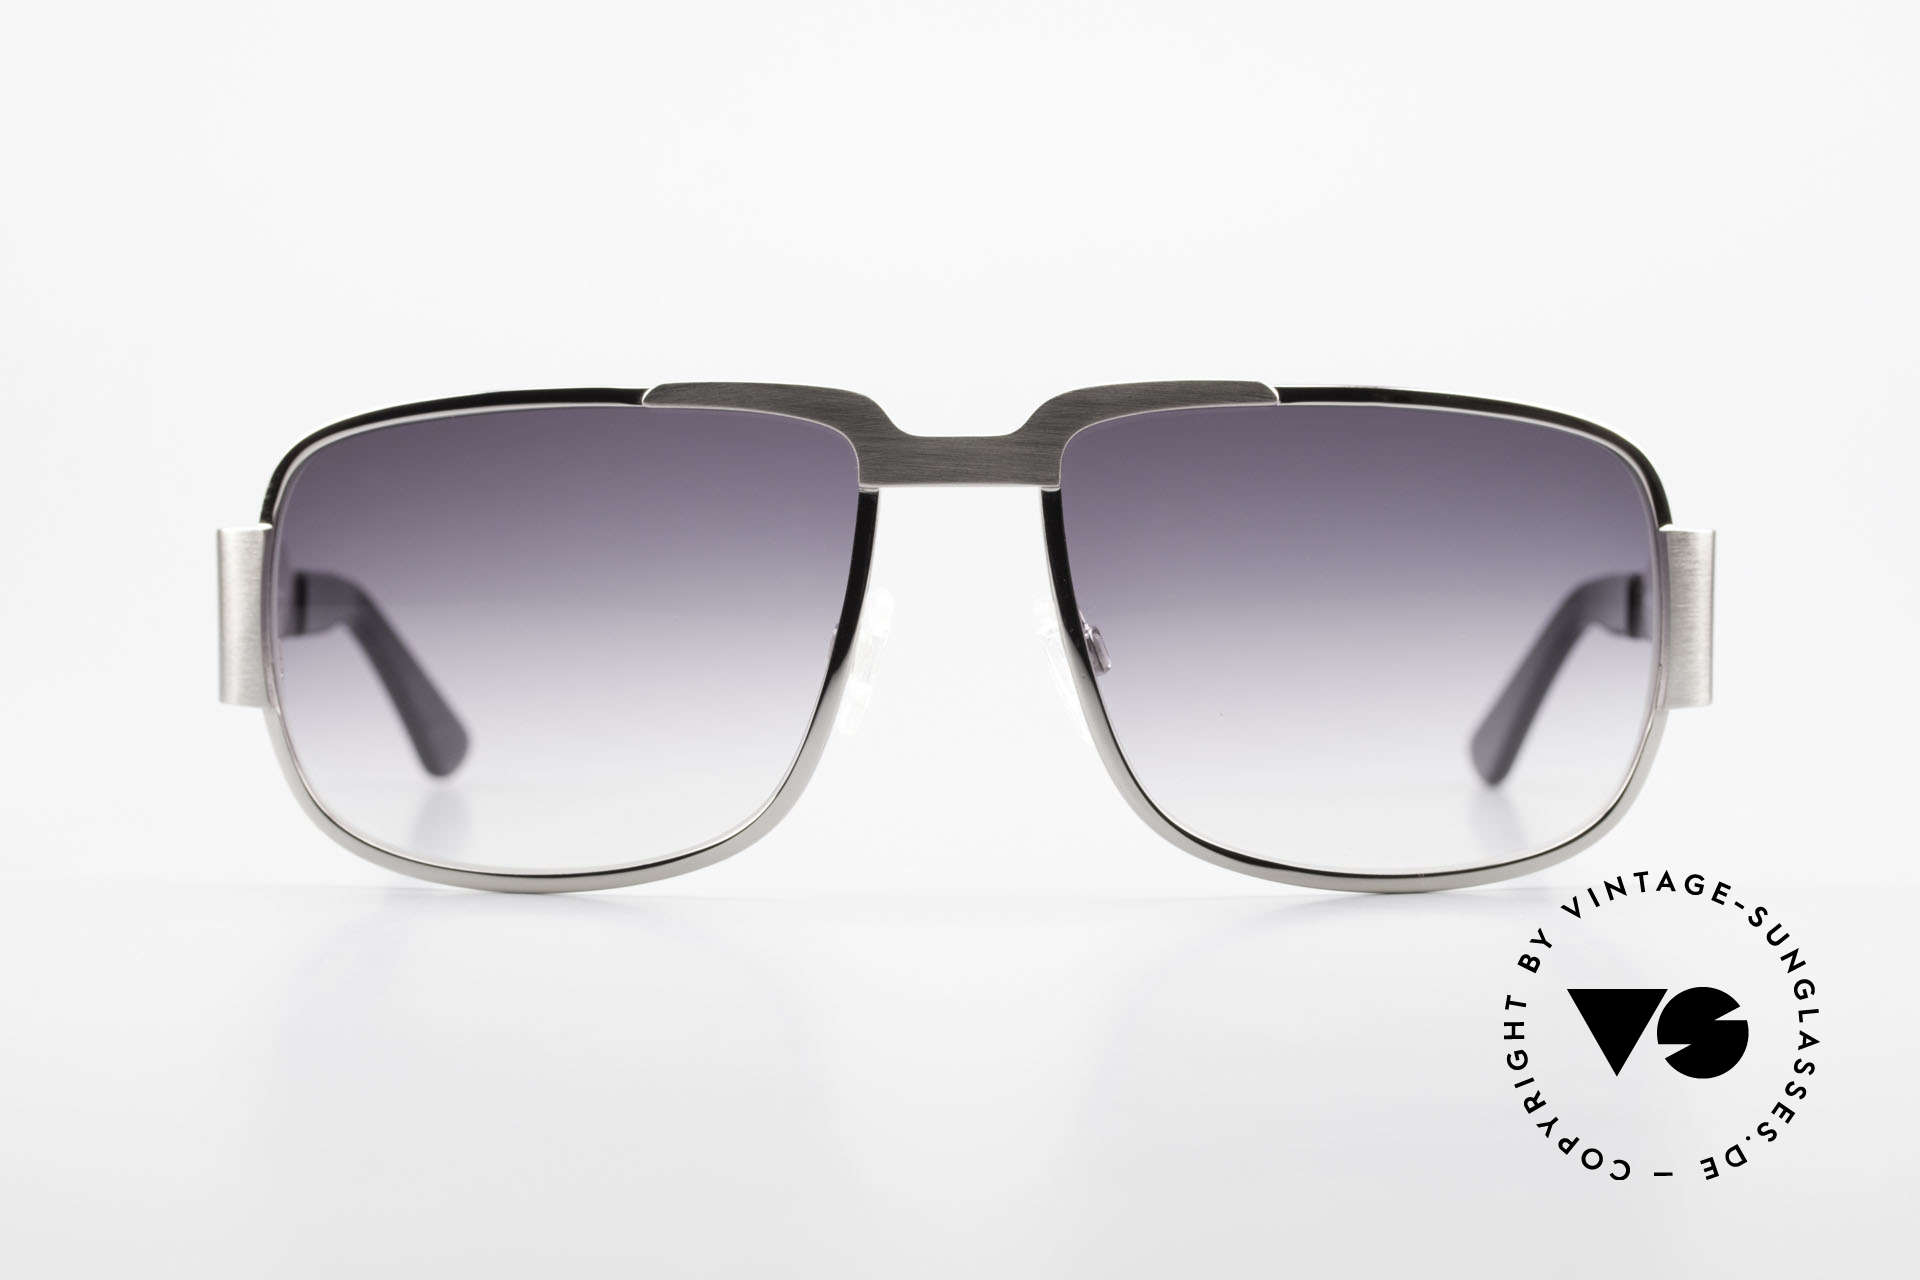 Neostyle Nautic 2 Elvis Presley Sunglasses, worn by Elvis Presley (the King of Rock´n´Roll) in the 70s, Made for Men